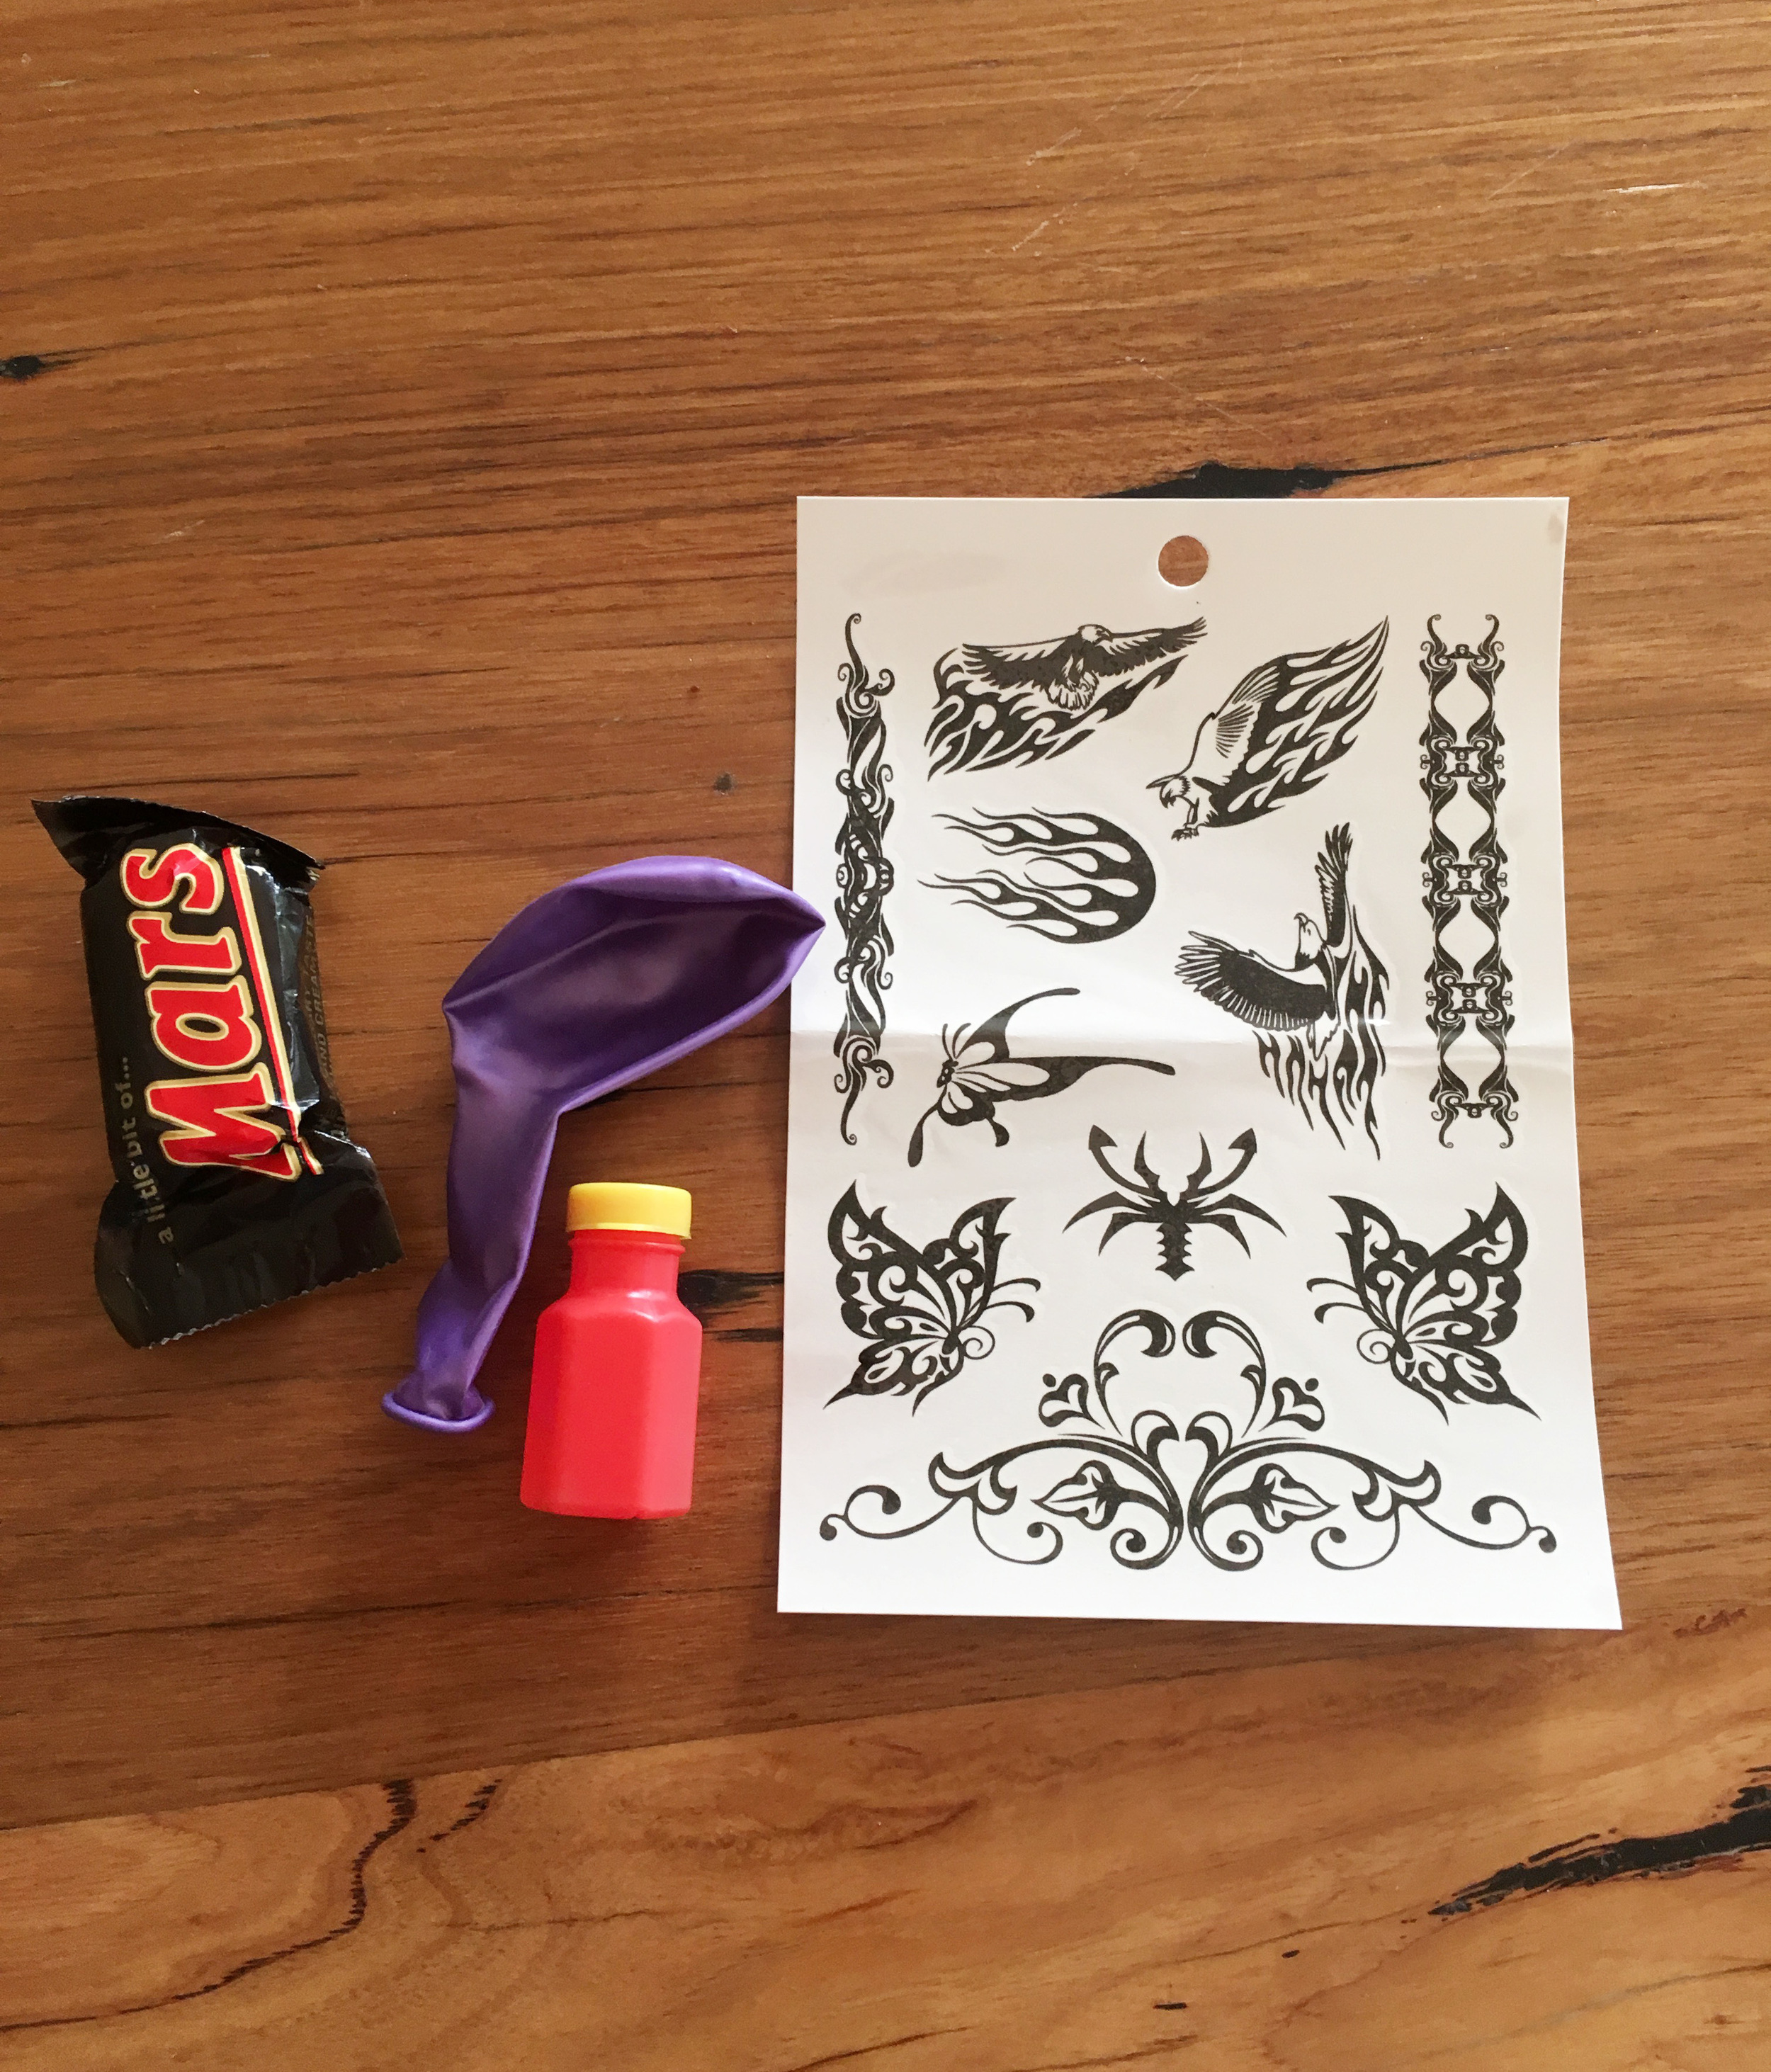 Lolly bag contents for kids' party